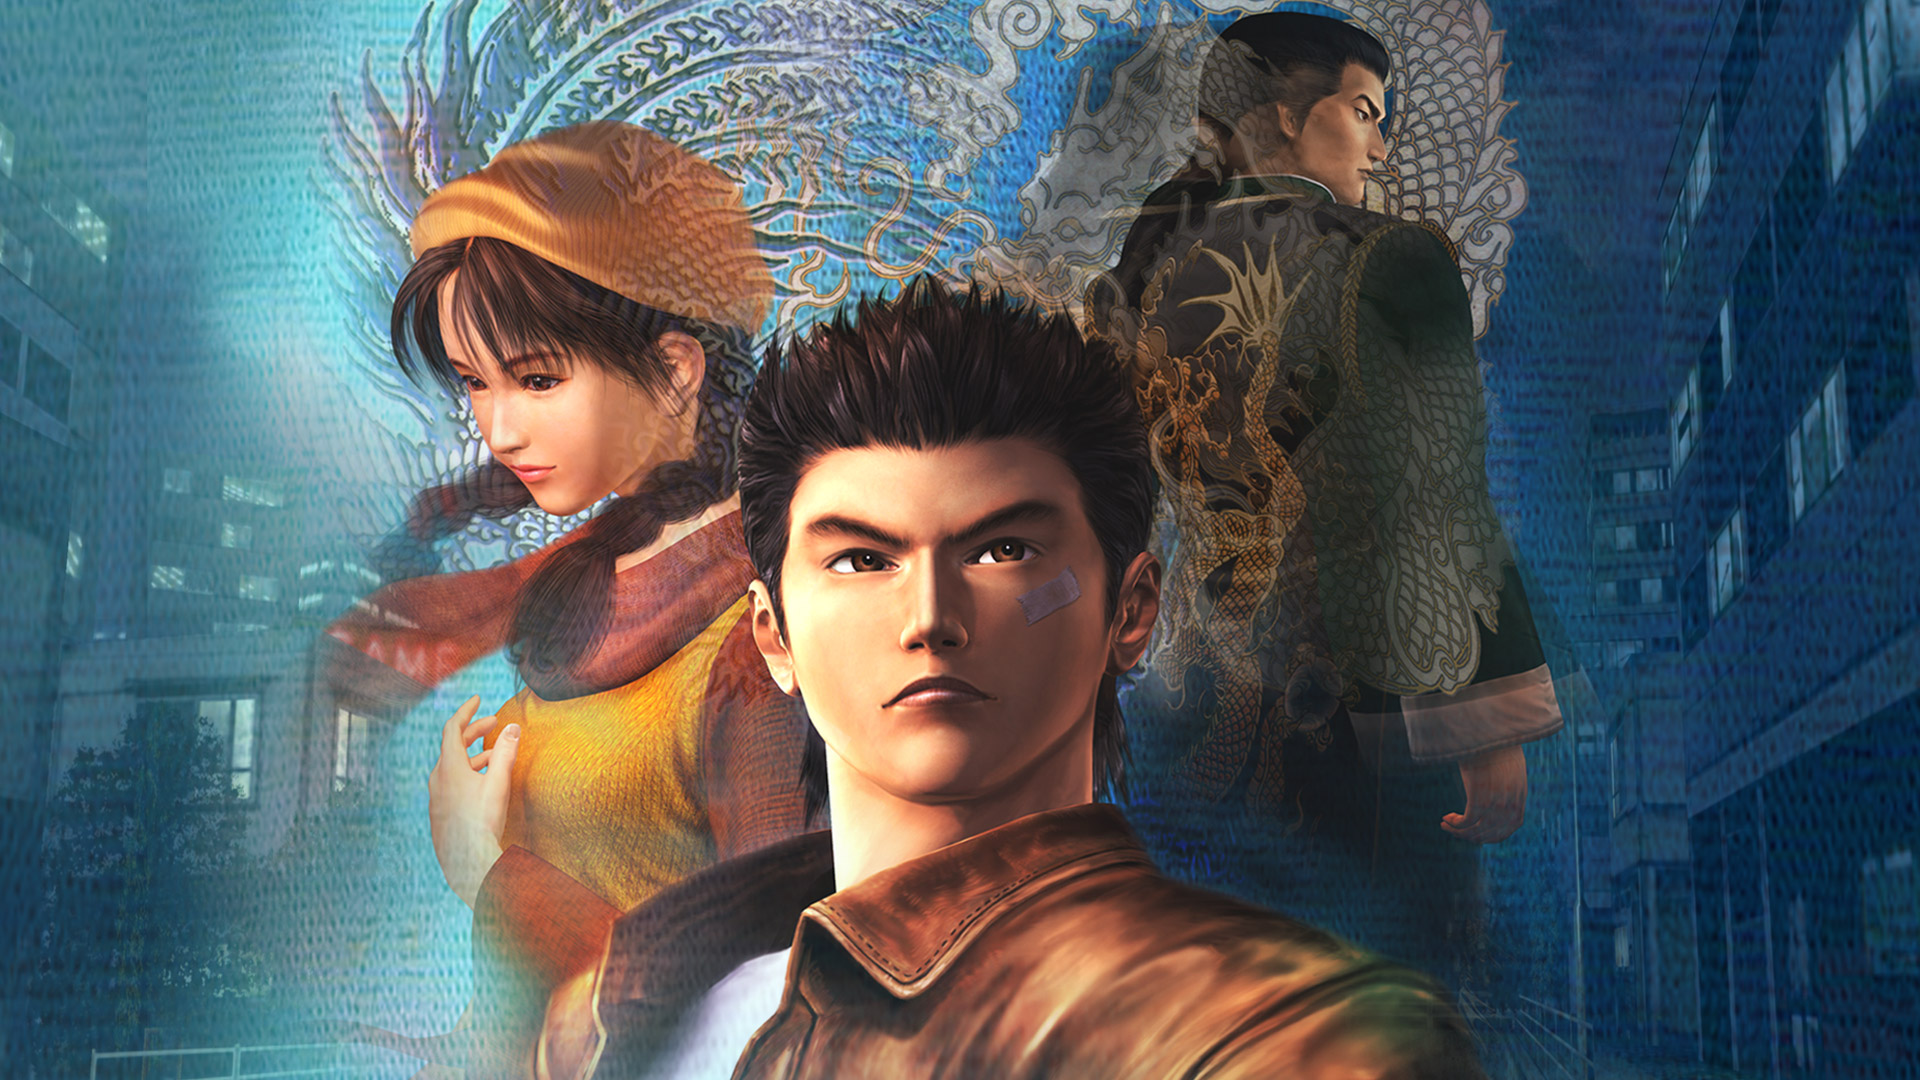 Shenmue Wallpaper in 1920x1080